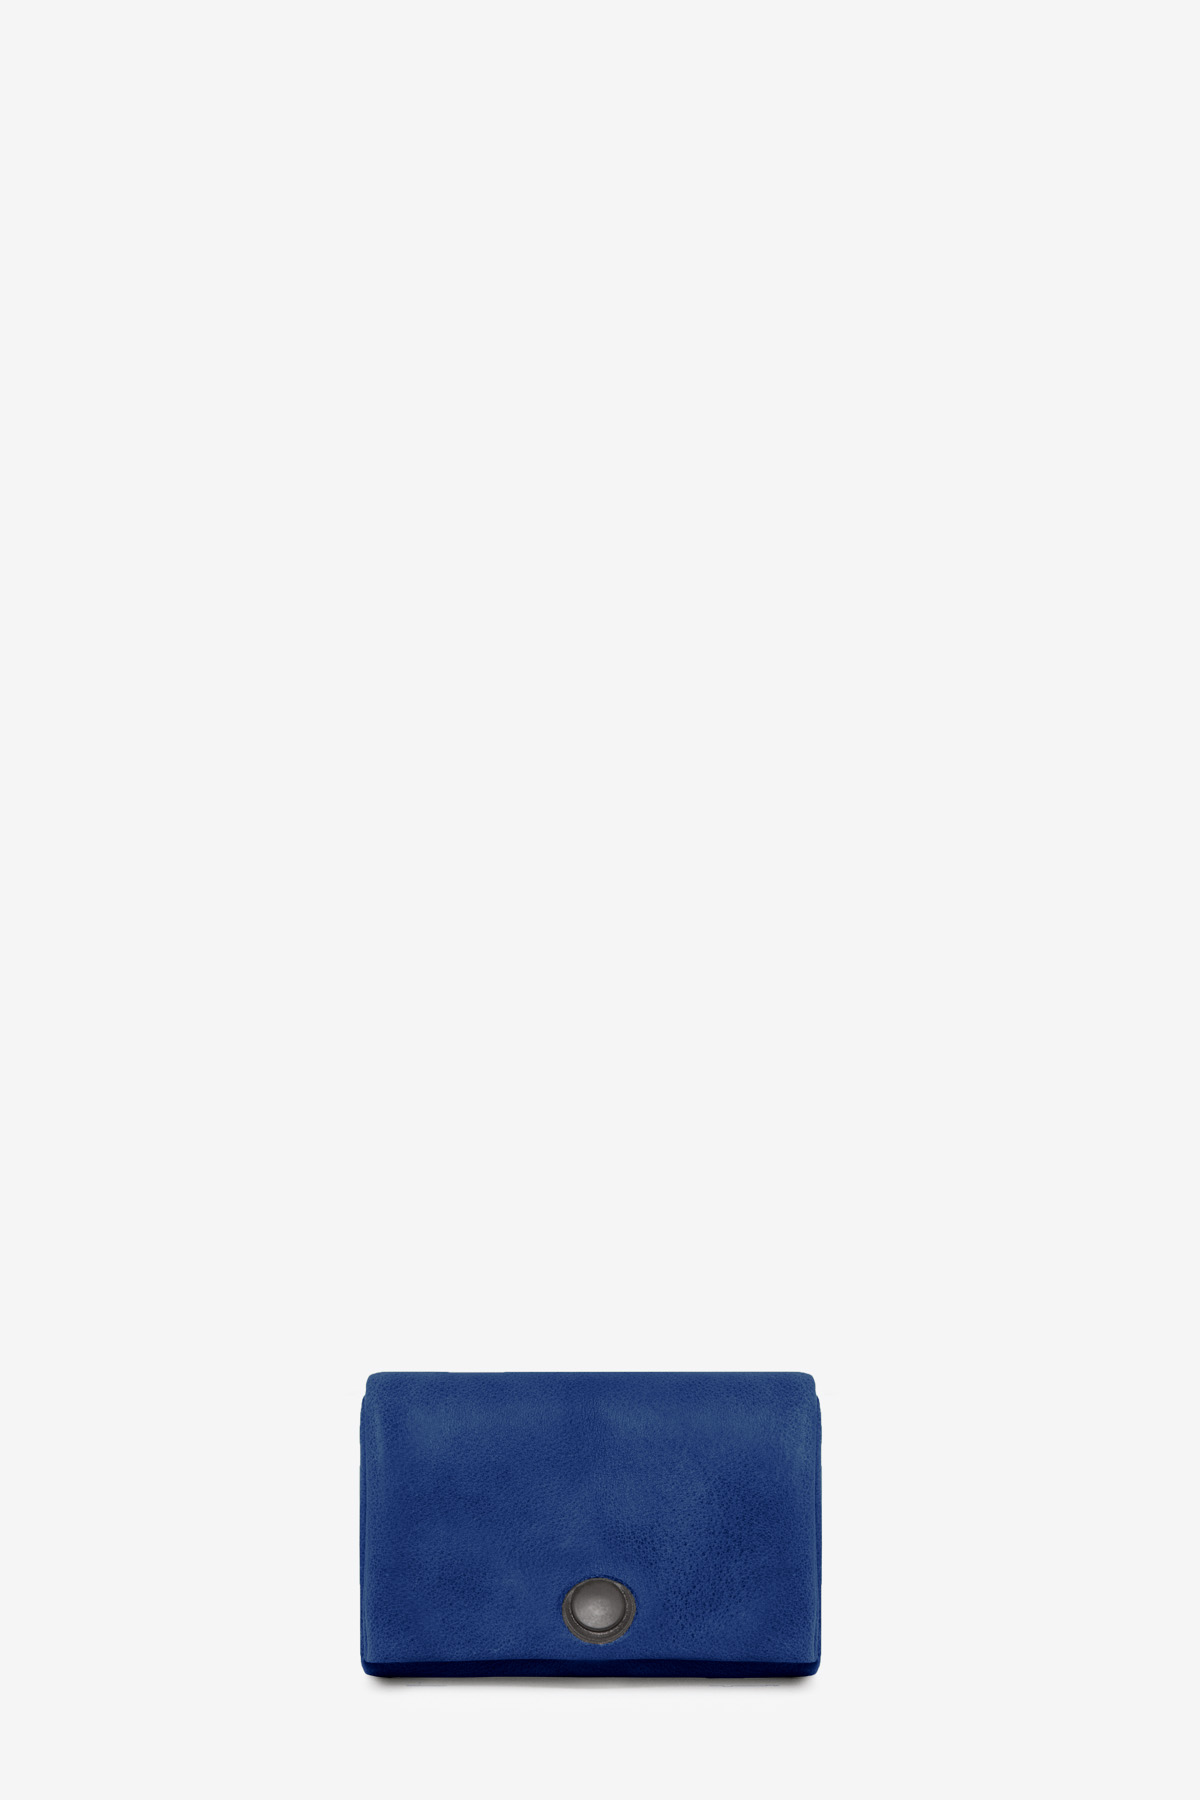 dclr001-youthwallet-a20-royalblue-front